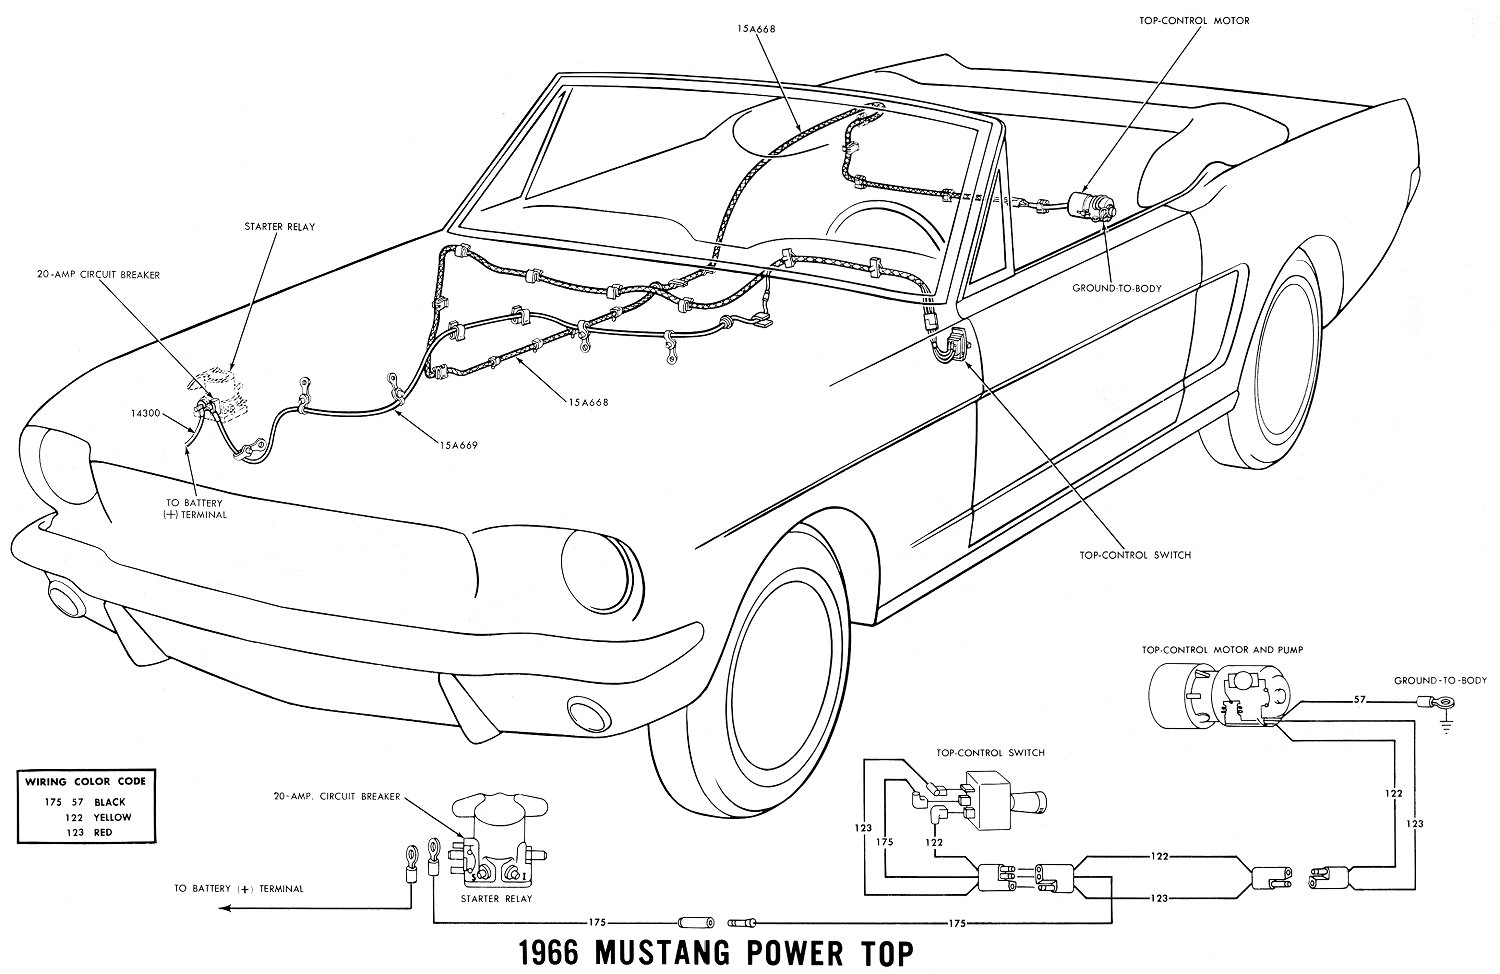 1966 Mustang Wiring Diagrams on emergency lighting wiring diagram